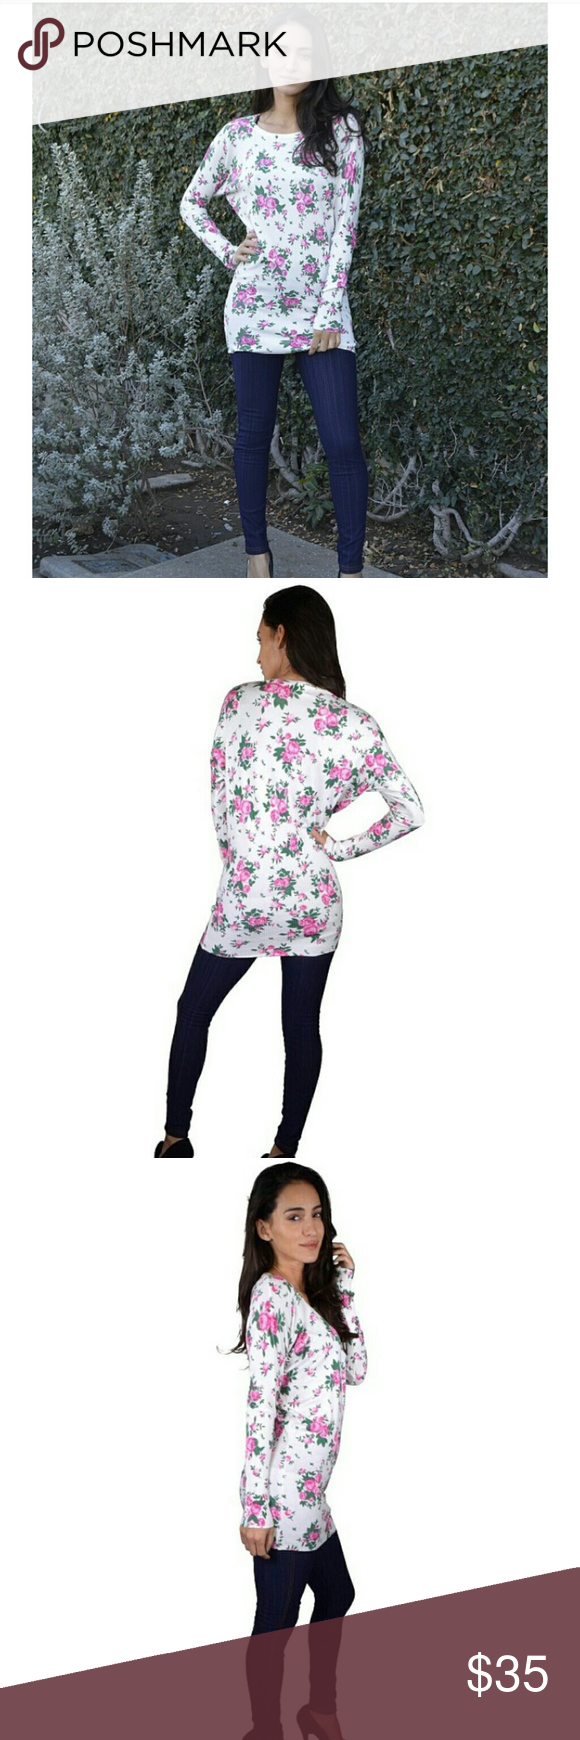 Gorgeous Floral Long Sleeve Top This beauty was hand picked by me as a *NEW * item. This is 65% Cotton/ 35%Polyester. Perfect for Spring or Easter!!! Boutique  Tops Tees - Long Sleeve